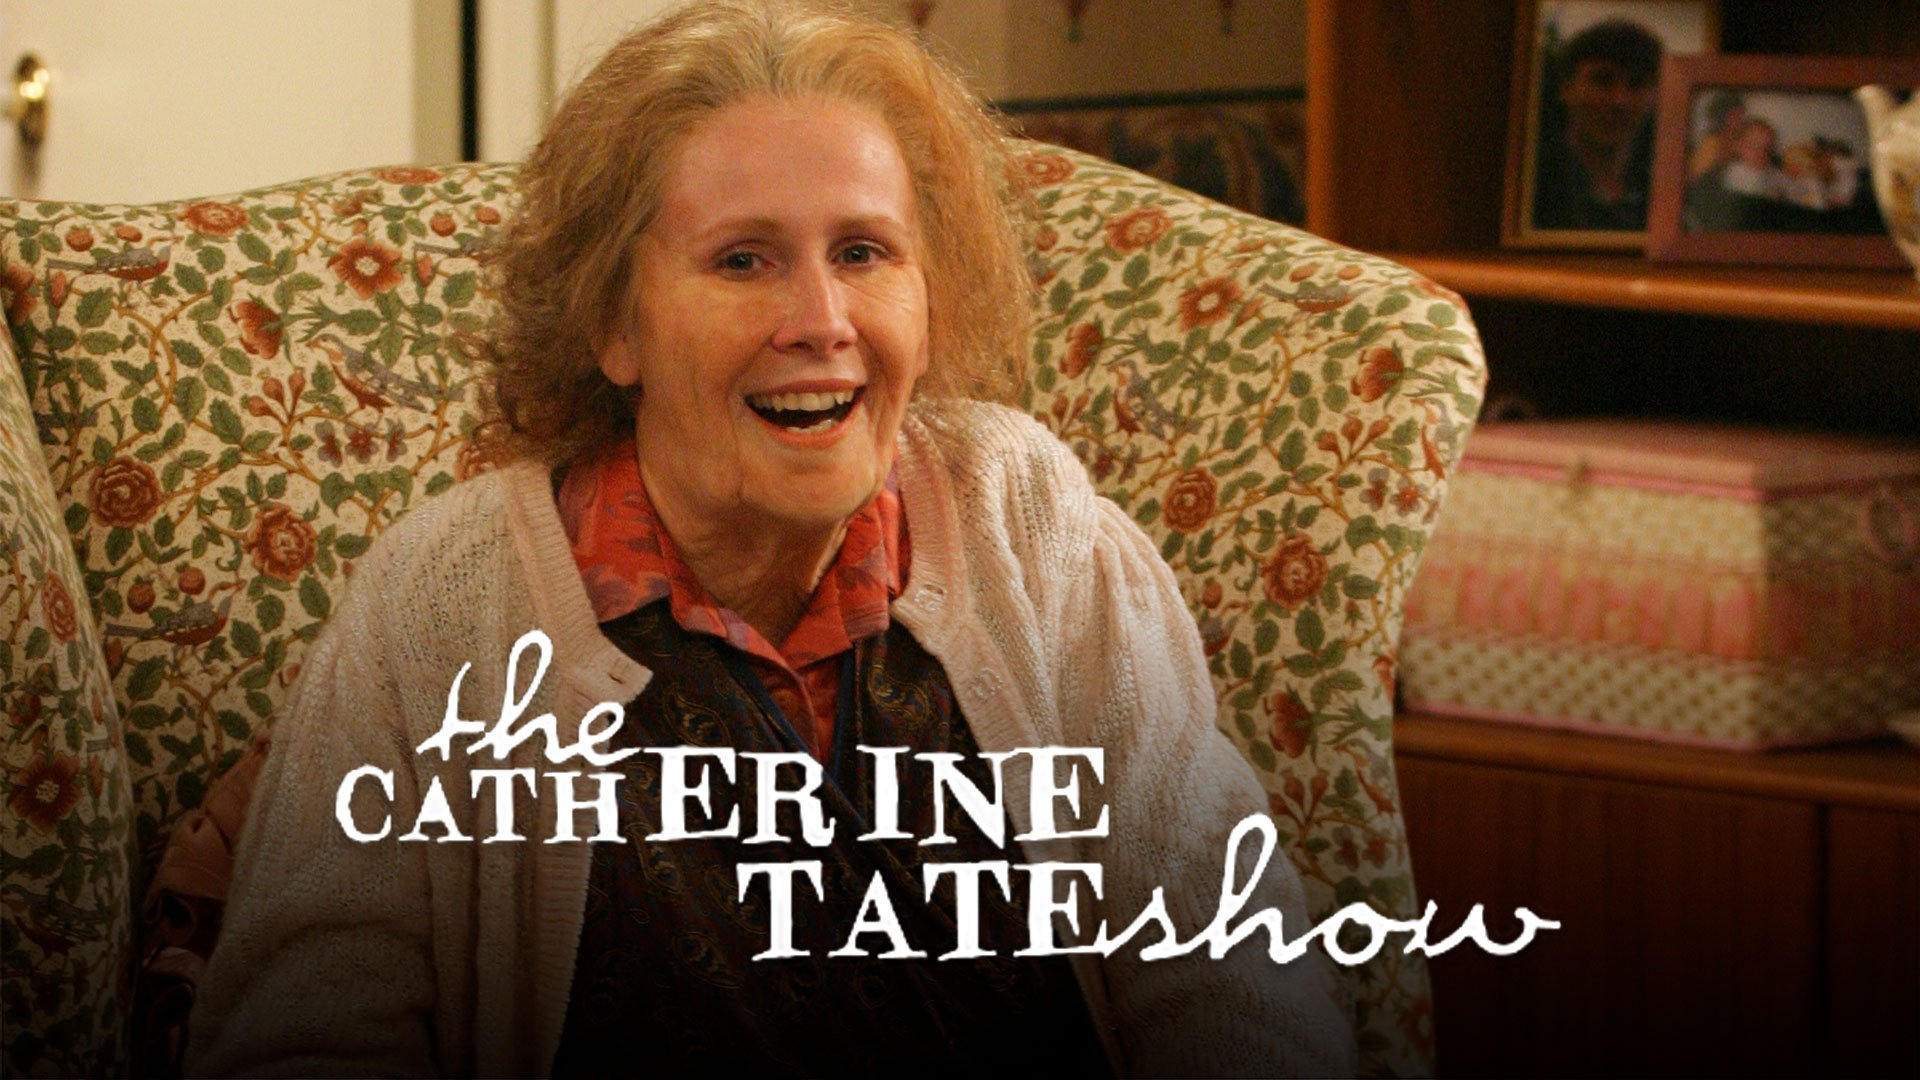 The Catherine Tate Show on BritBox UK